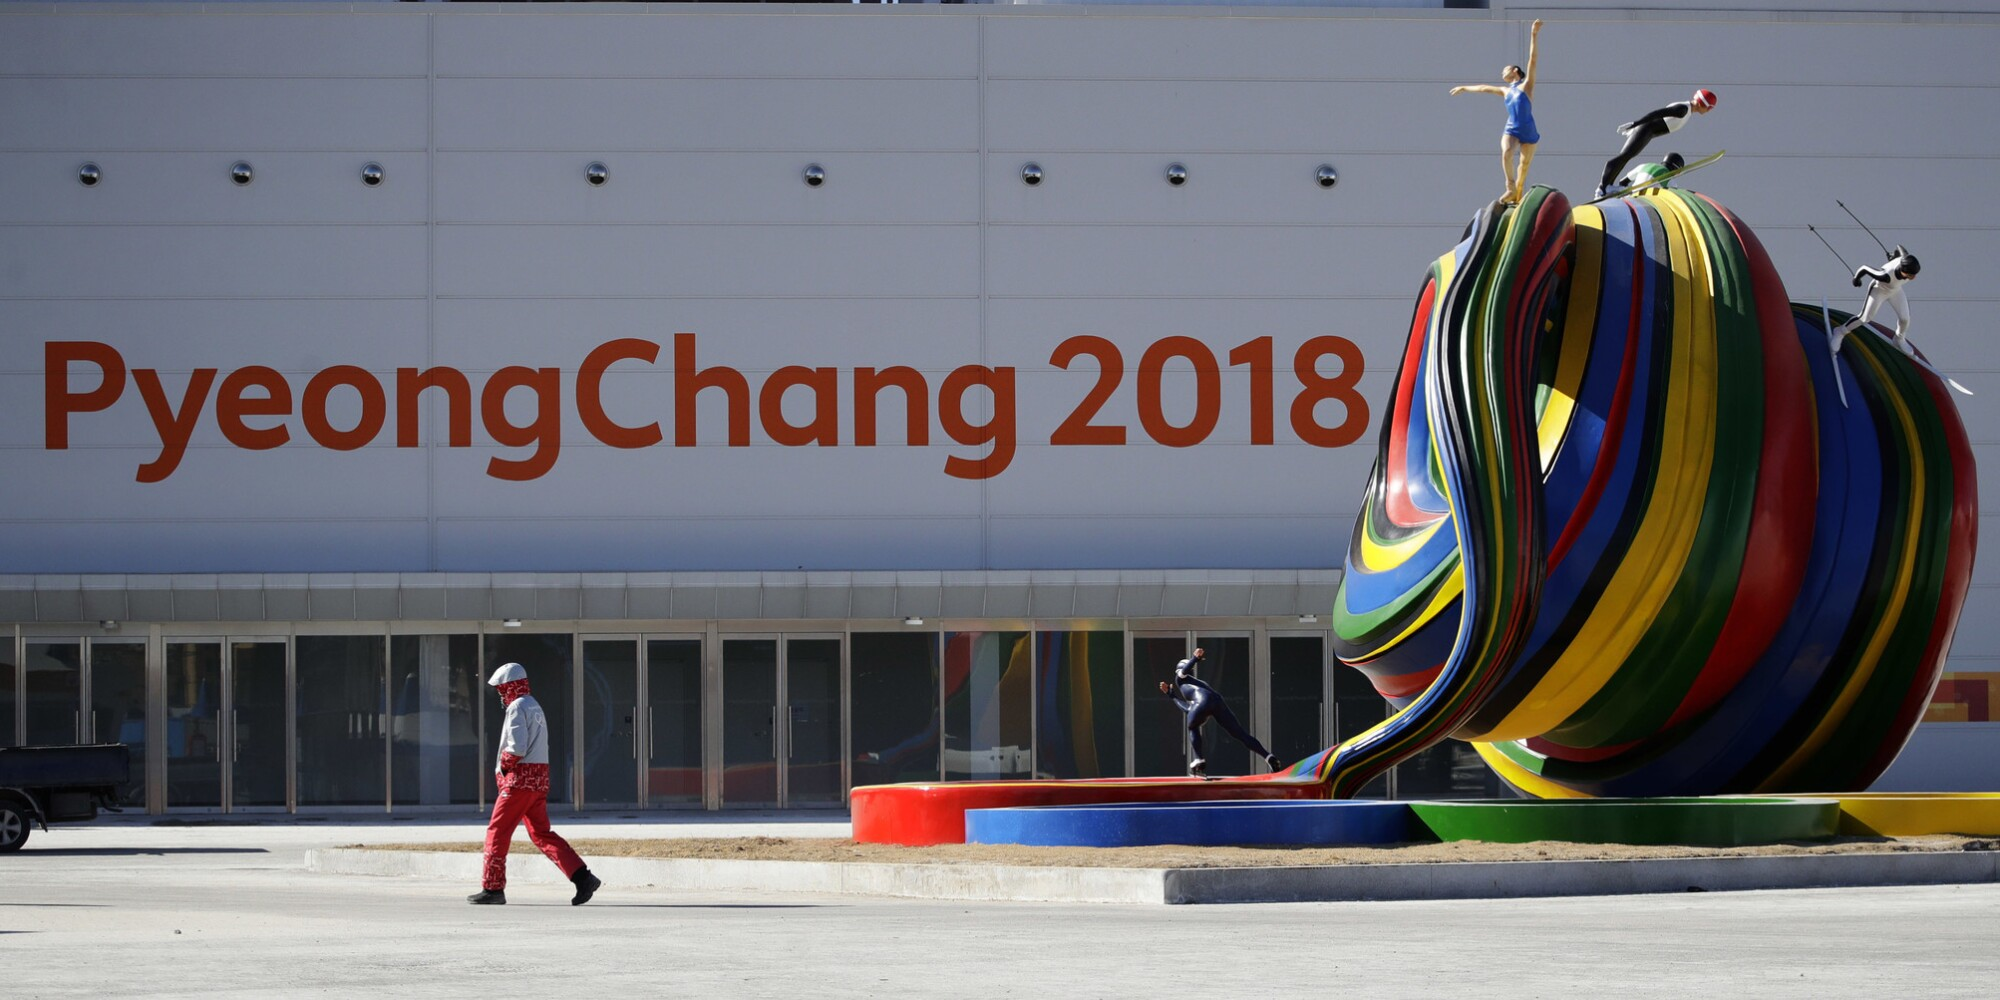 Winter Olympics live updates: The 2018 Winter Games in Pyeongchang, South Korea